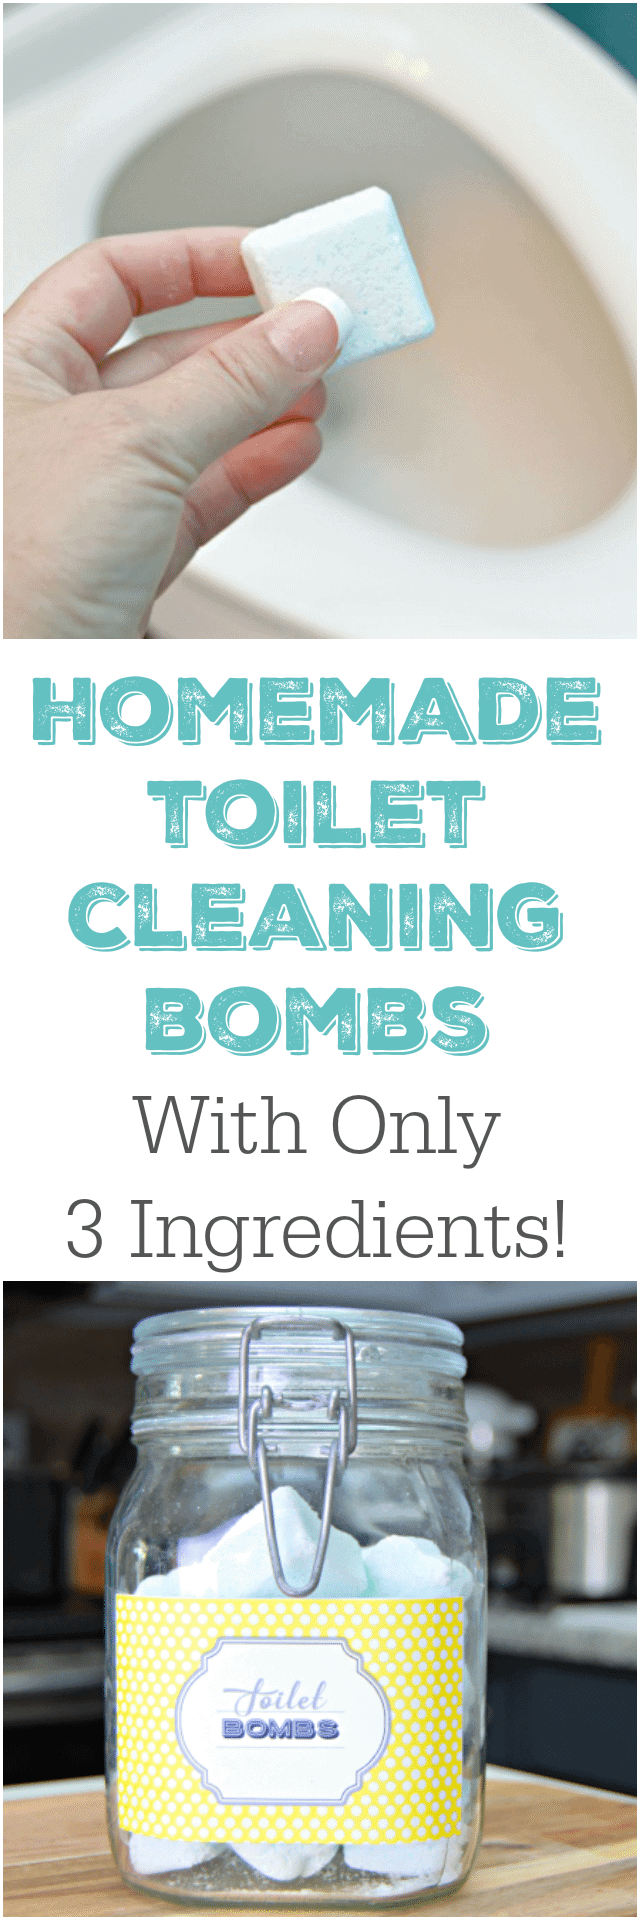 3 Ingredient Homemade Toilet Cleaning Bombs With Free